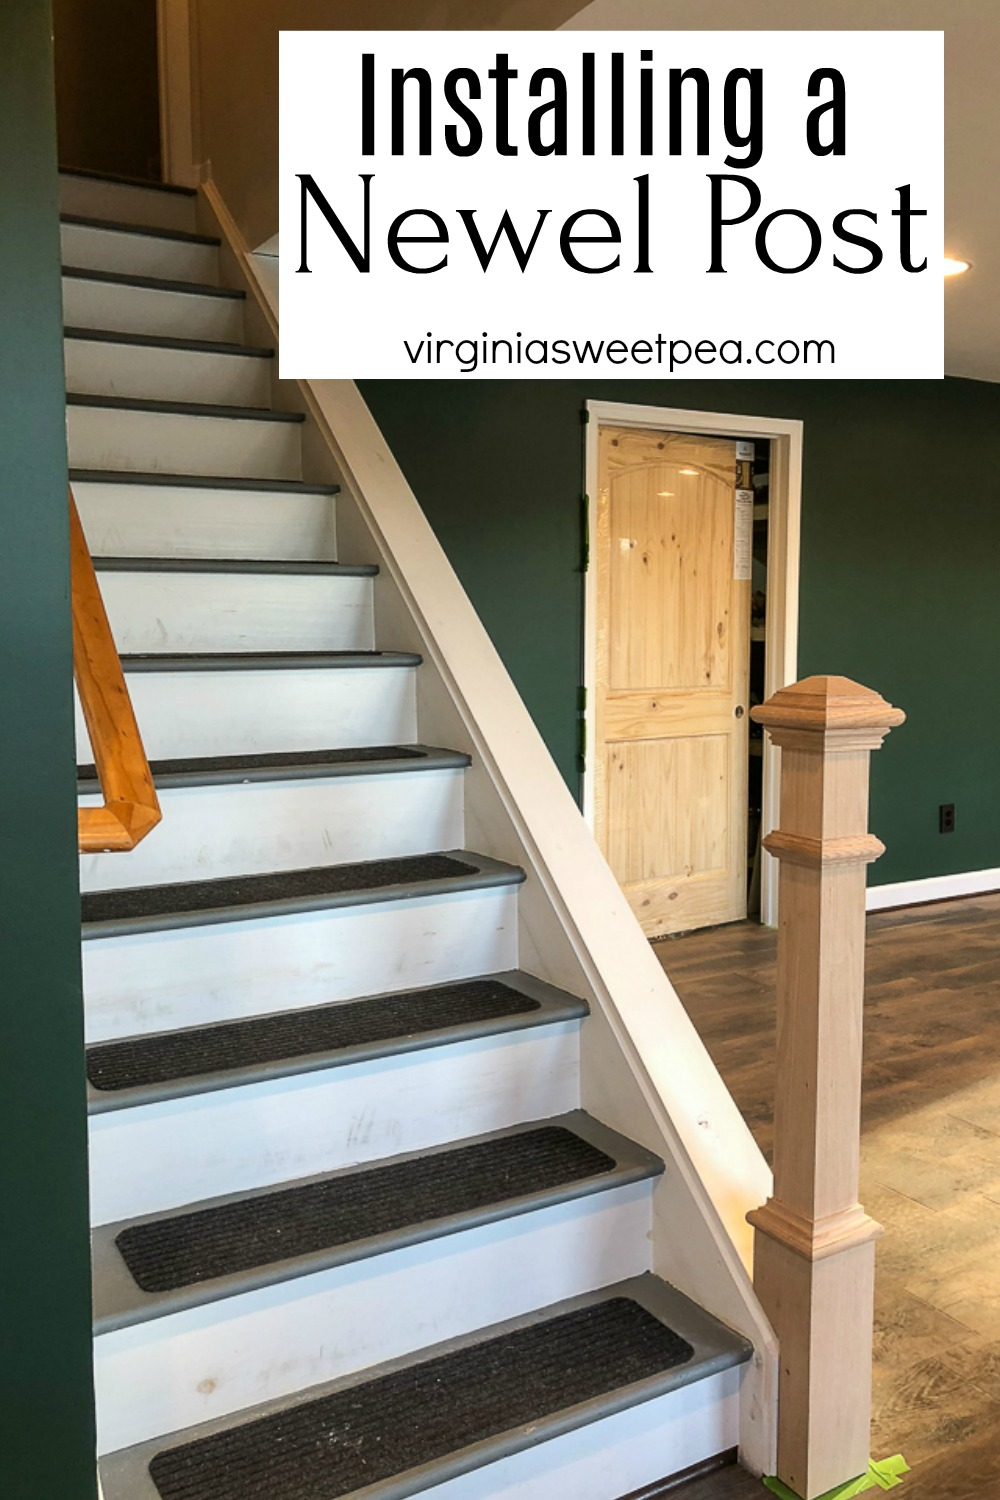 Installing a Newel Post - A newel post is added to the base of a set of basement stairs